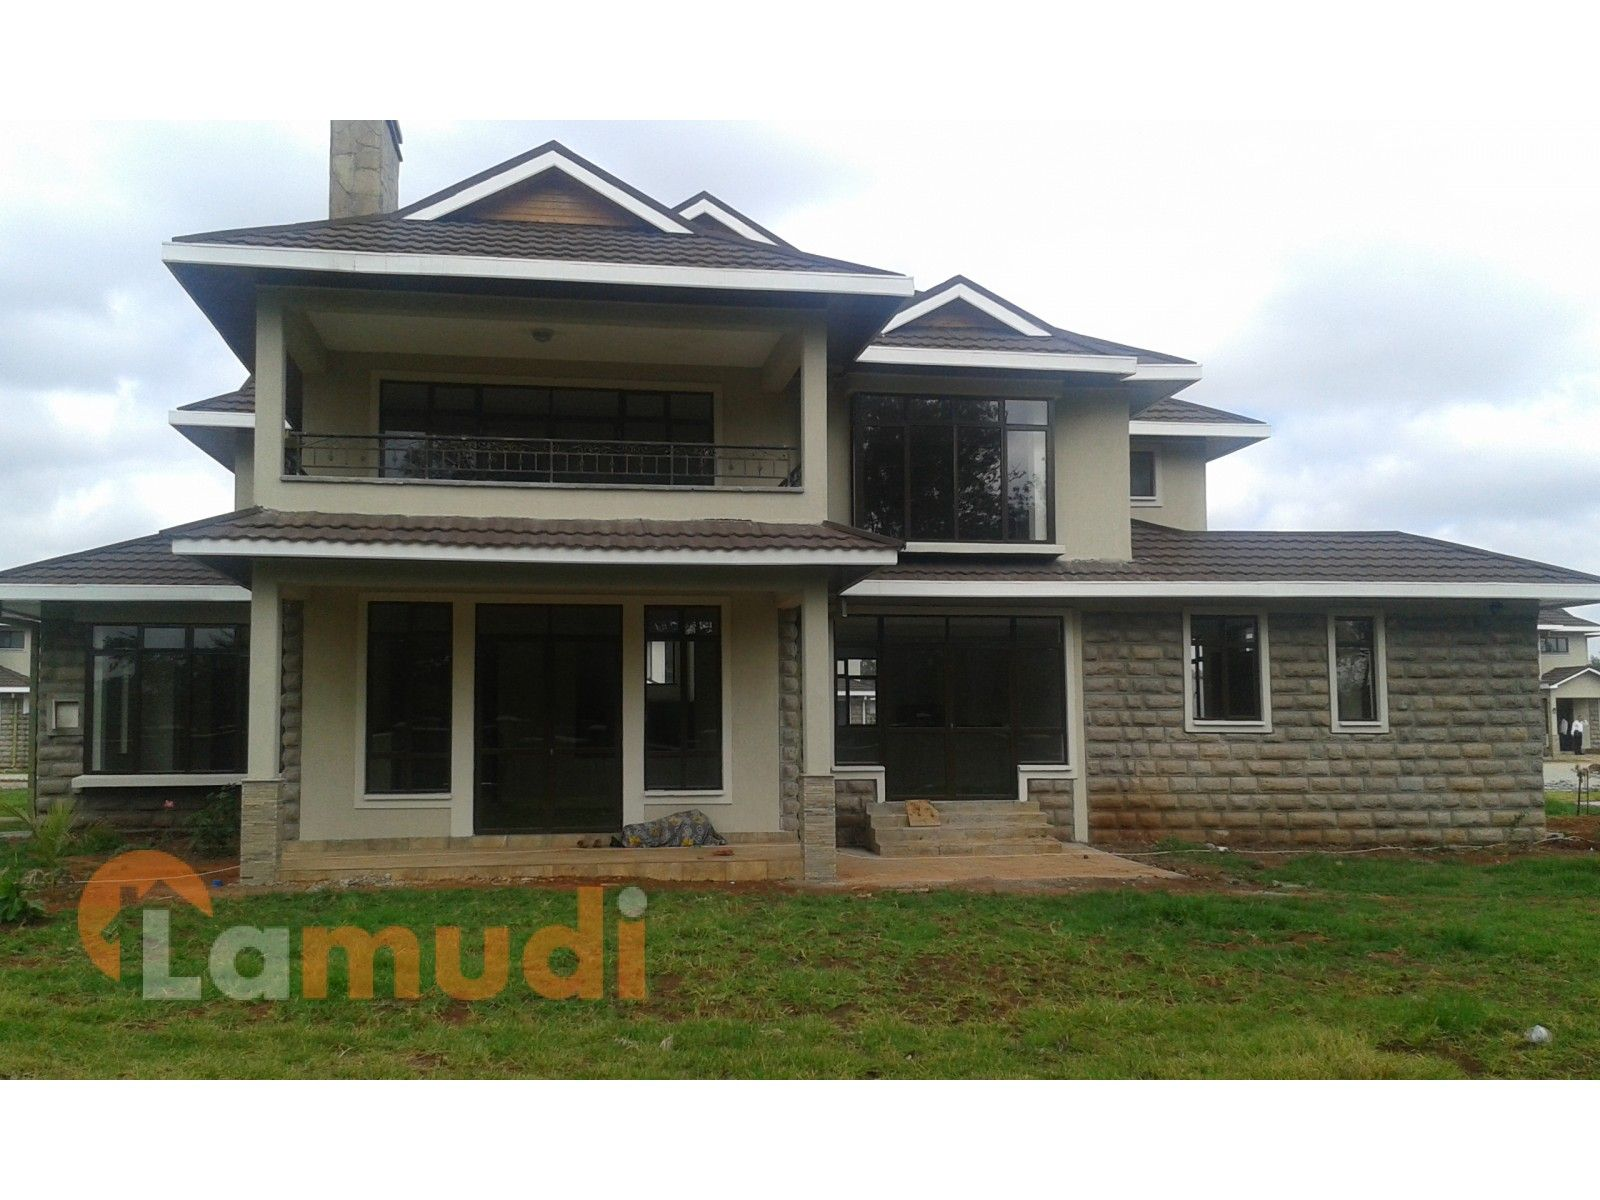 5 bedroom house for sale in runda for ksh 185 000 000 with web